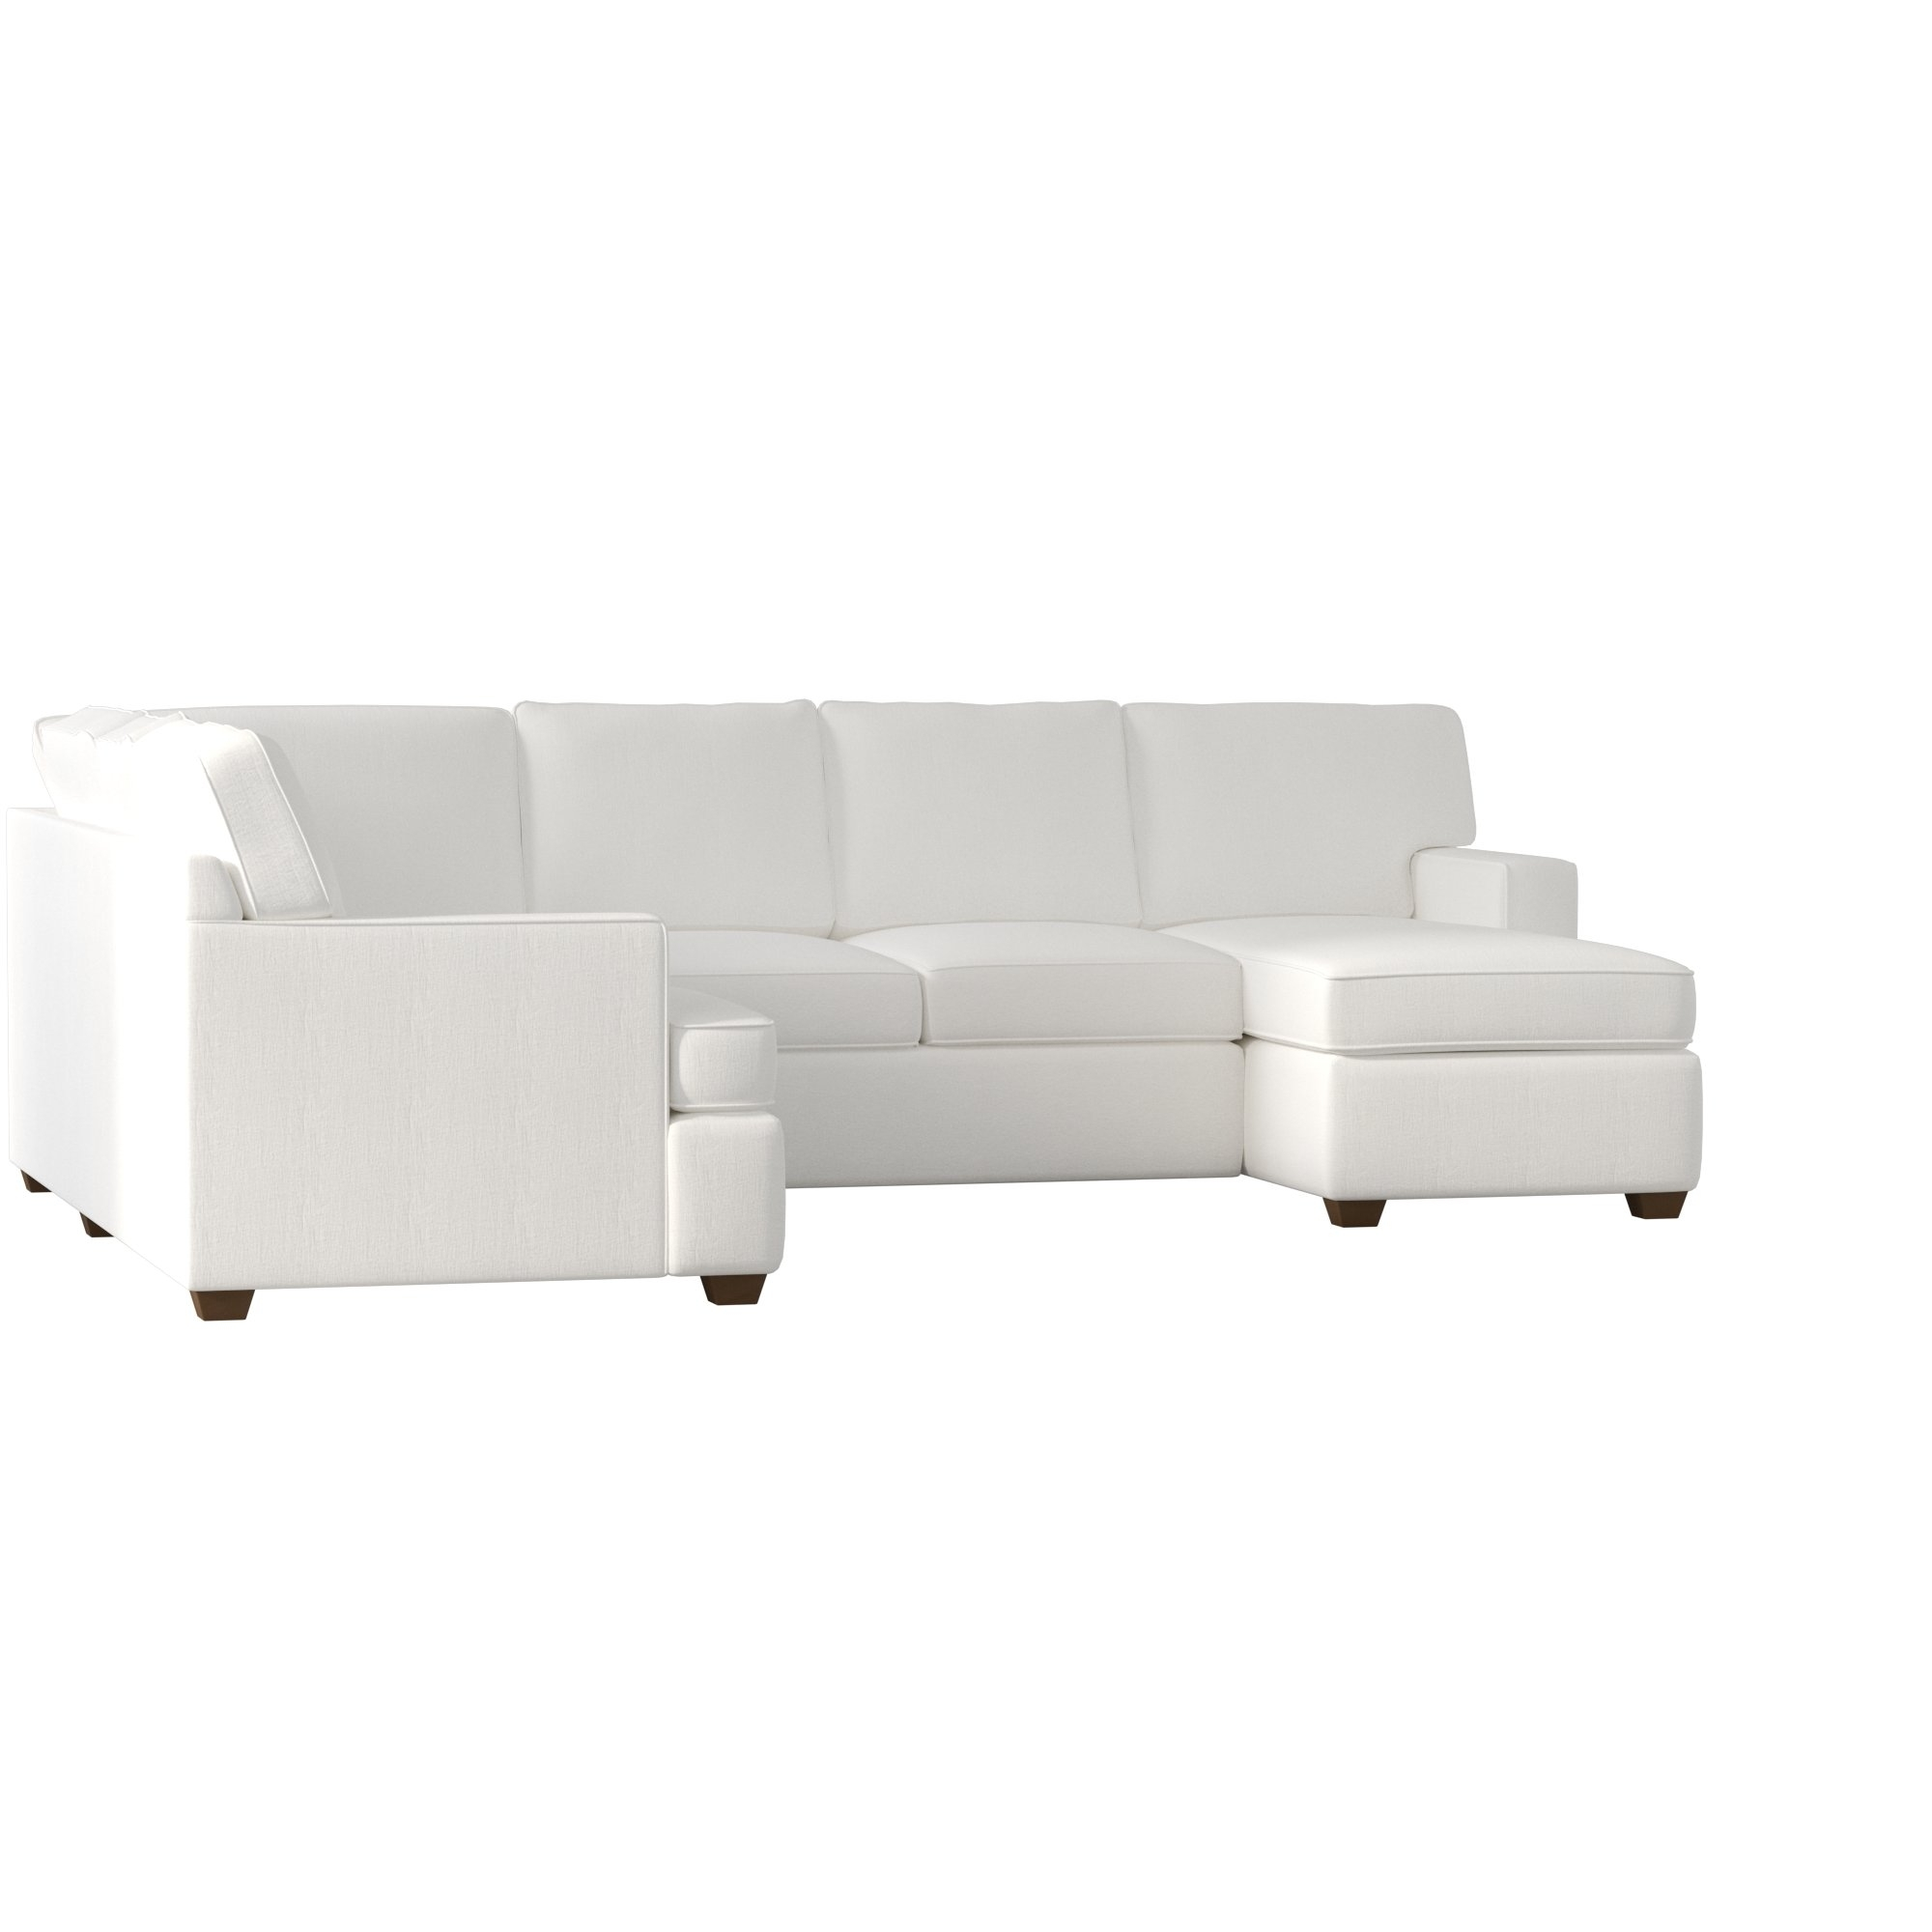 Birch Lane™ Evanston Sectional & Reviews | Birch Lane With Regard To Karen 3 Piece Sectionals (View 12 of 25)